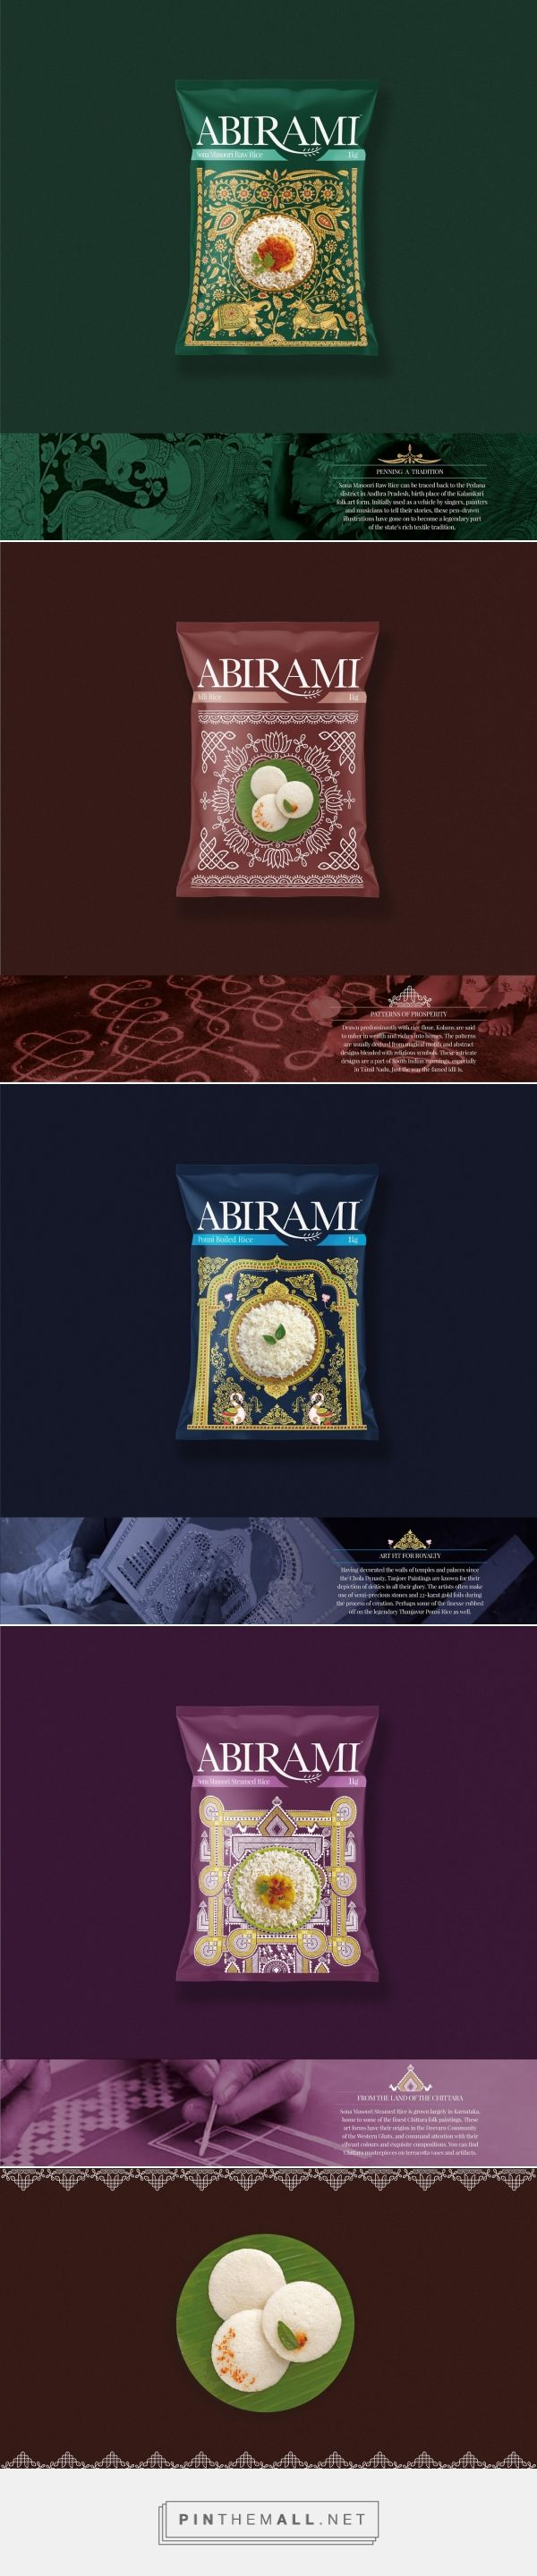 Abirami rice packaging design by Rubecon Communications - http://www.packagingoftheworld.com/2017/03/abirami.html